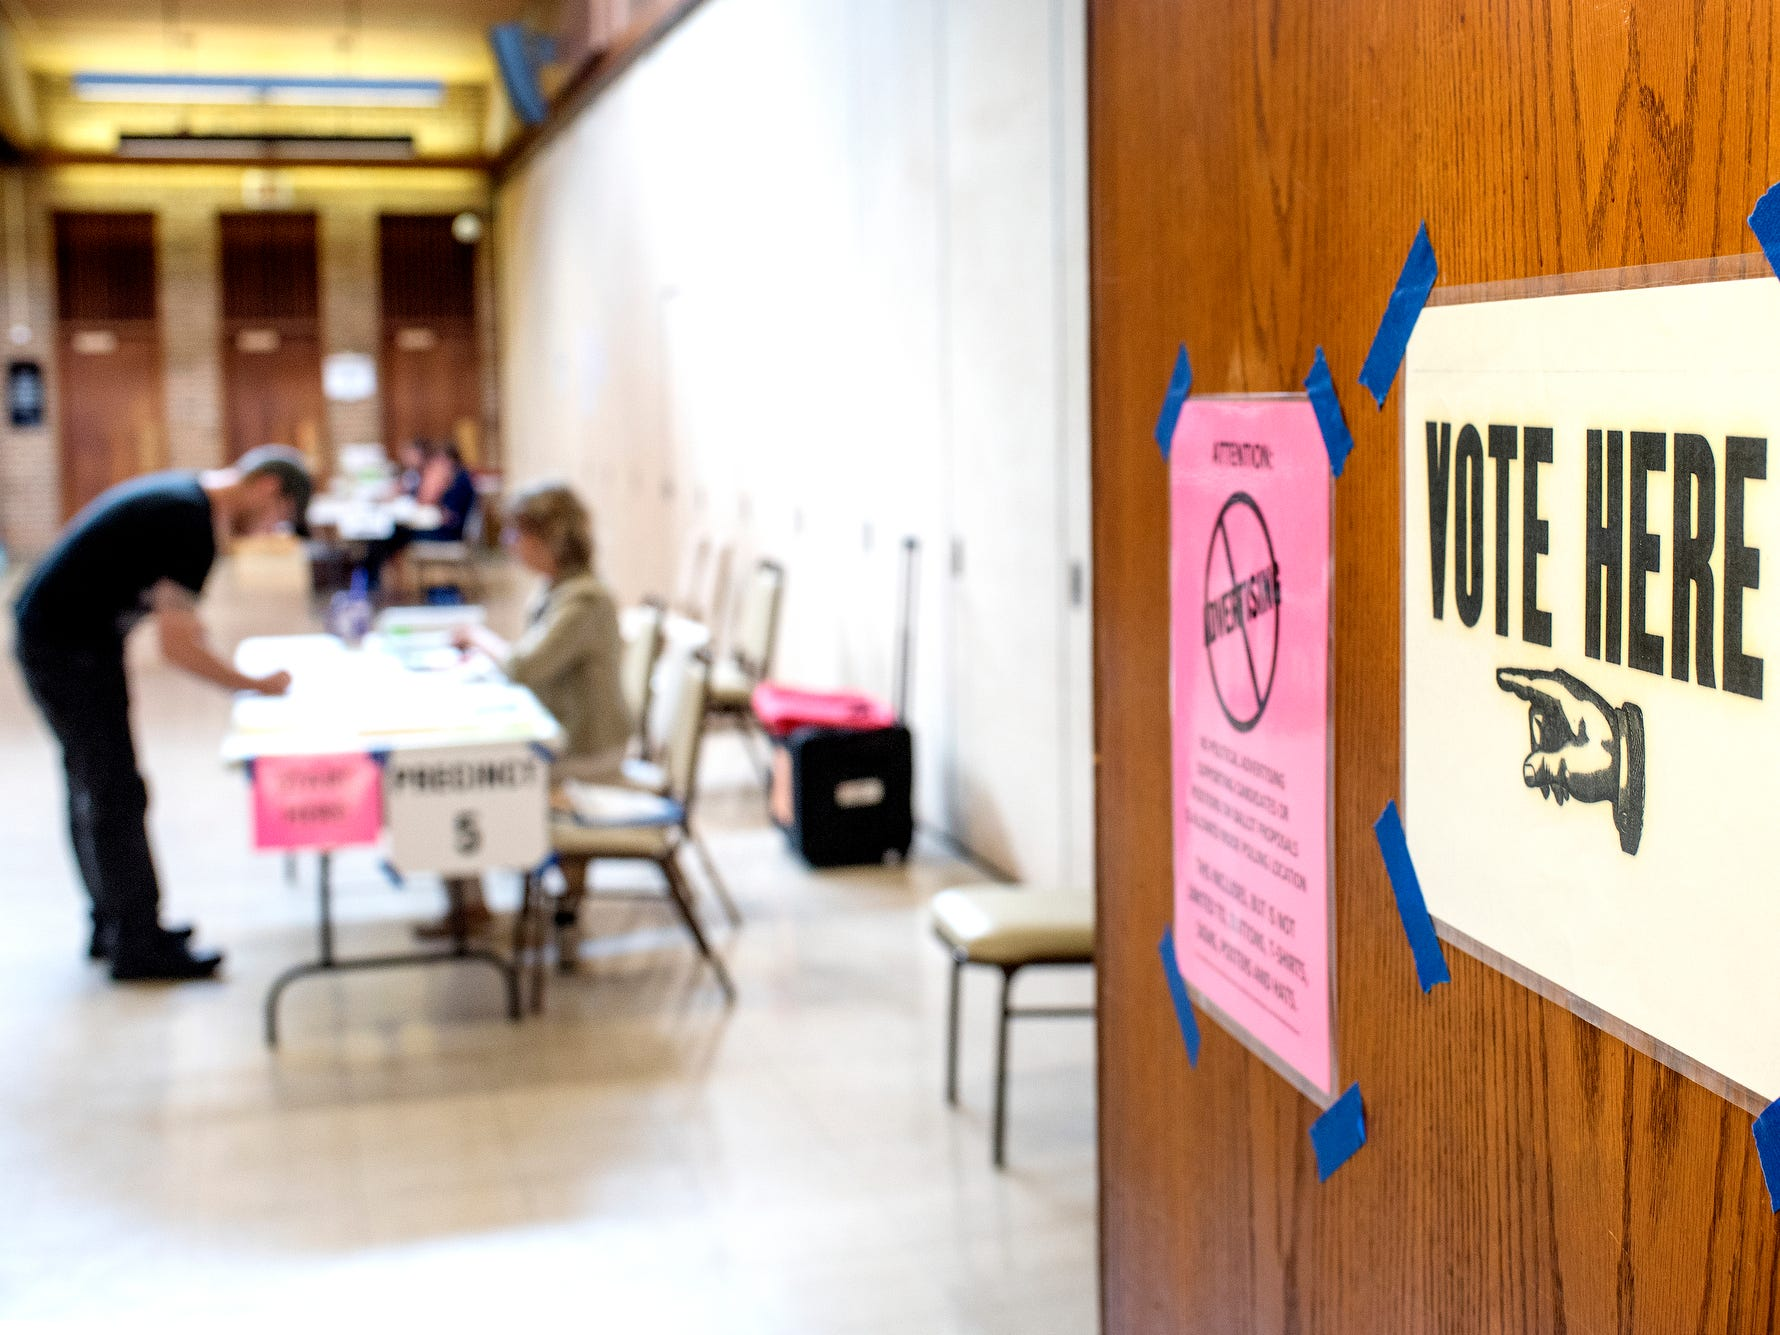 A voter prepares to fill out a ballot at the polling place at Shaarey Zedek Congregation on Tuesday, Aug. 7, 2018, in East Lansing.